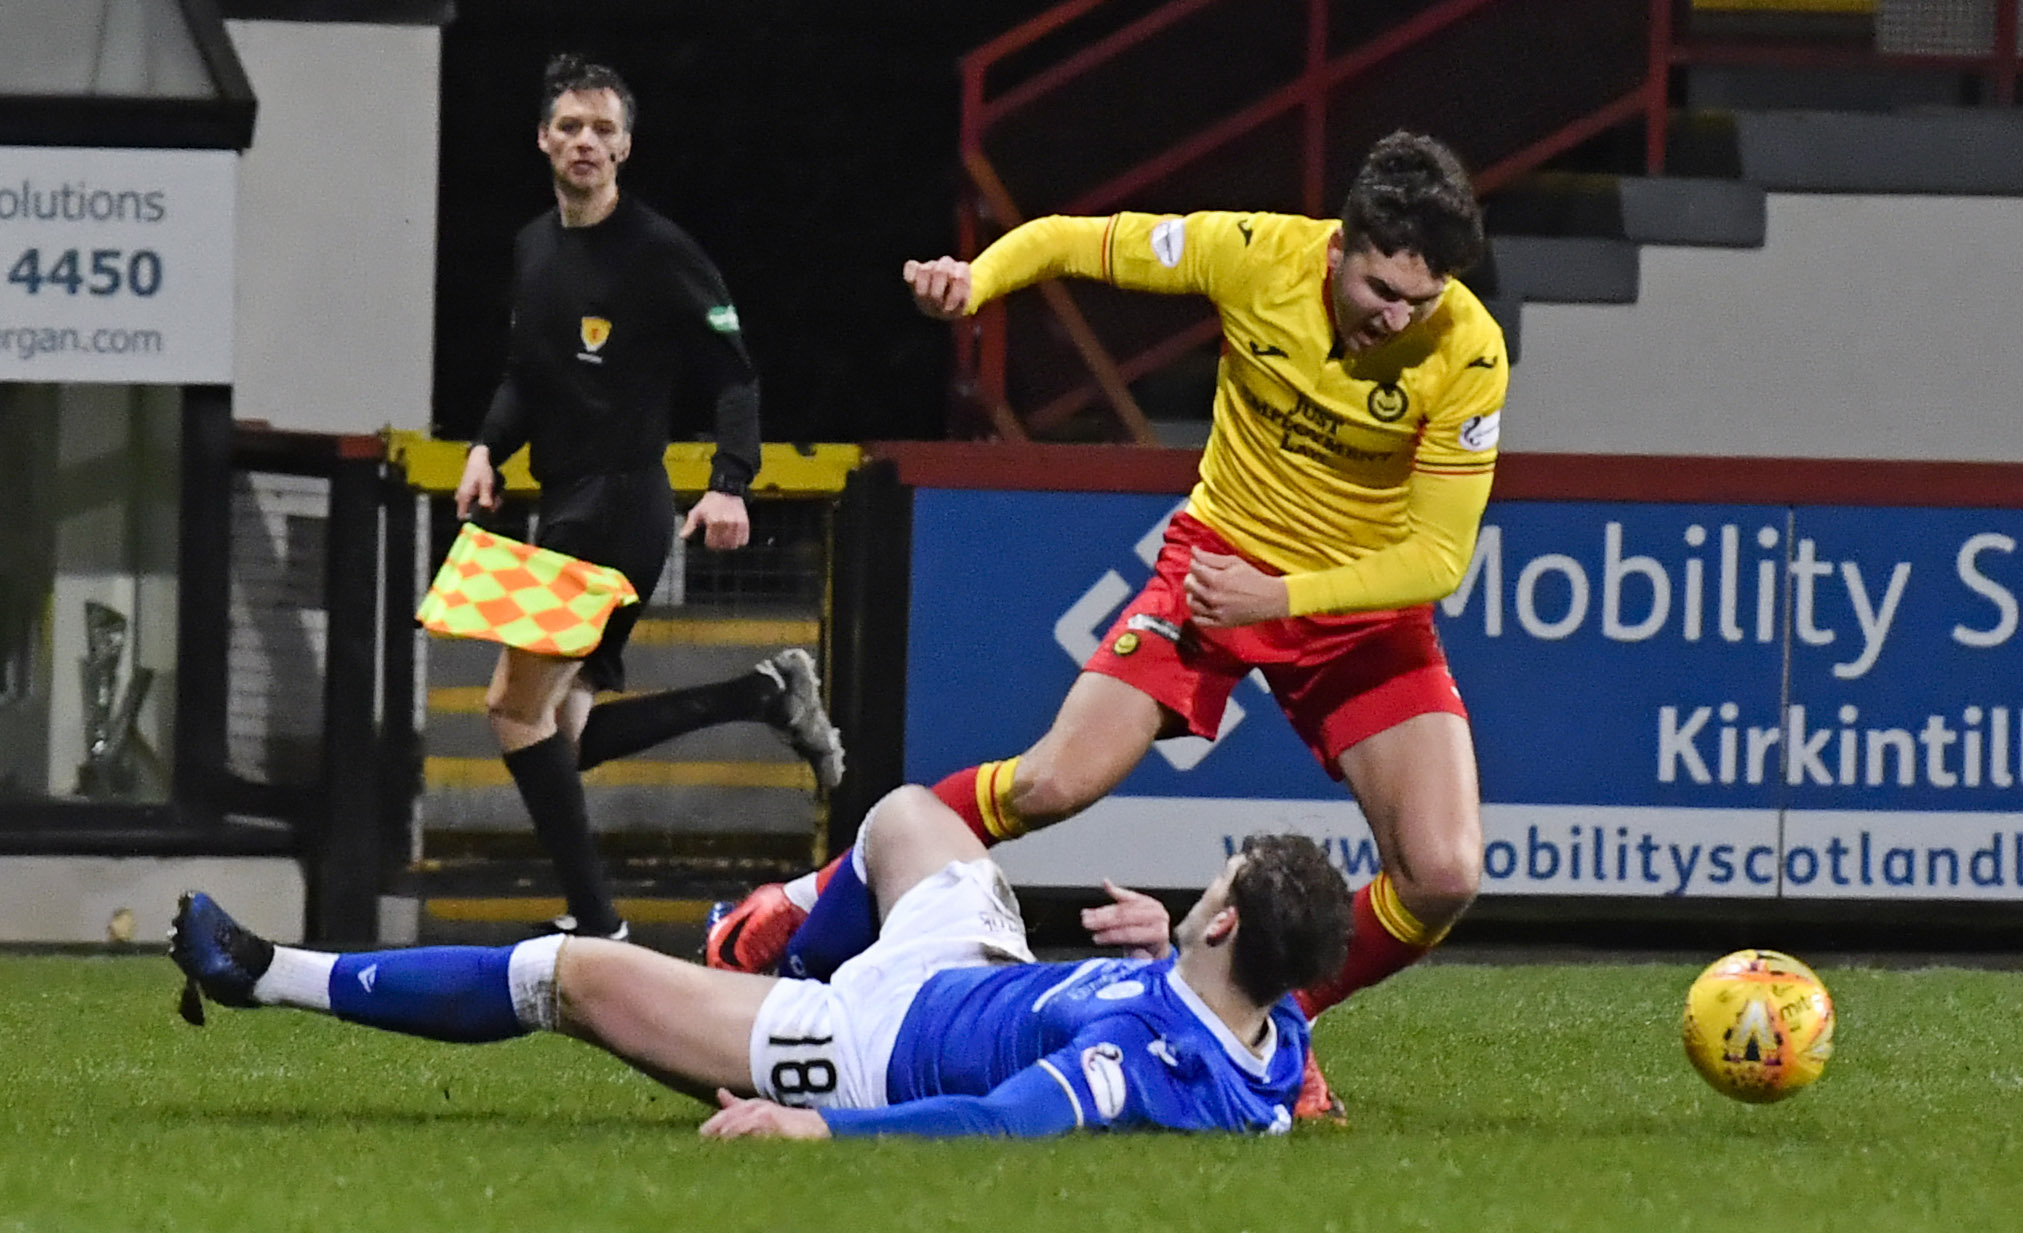 Partick Thistle 0, Queen of the South 0: Five things we learned